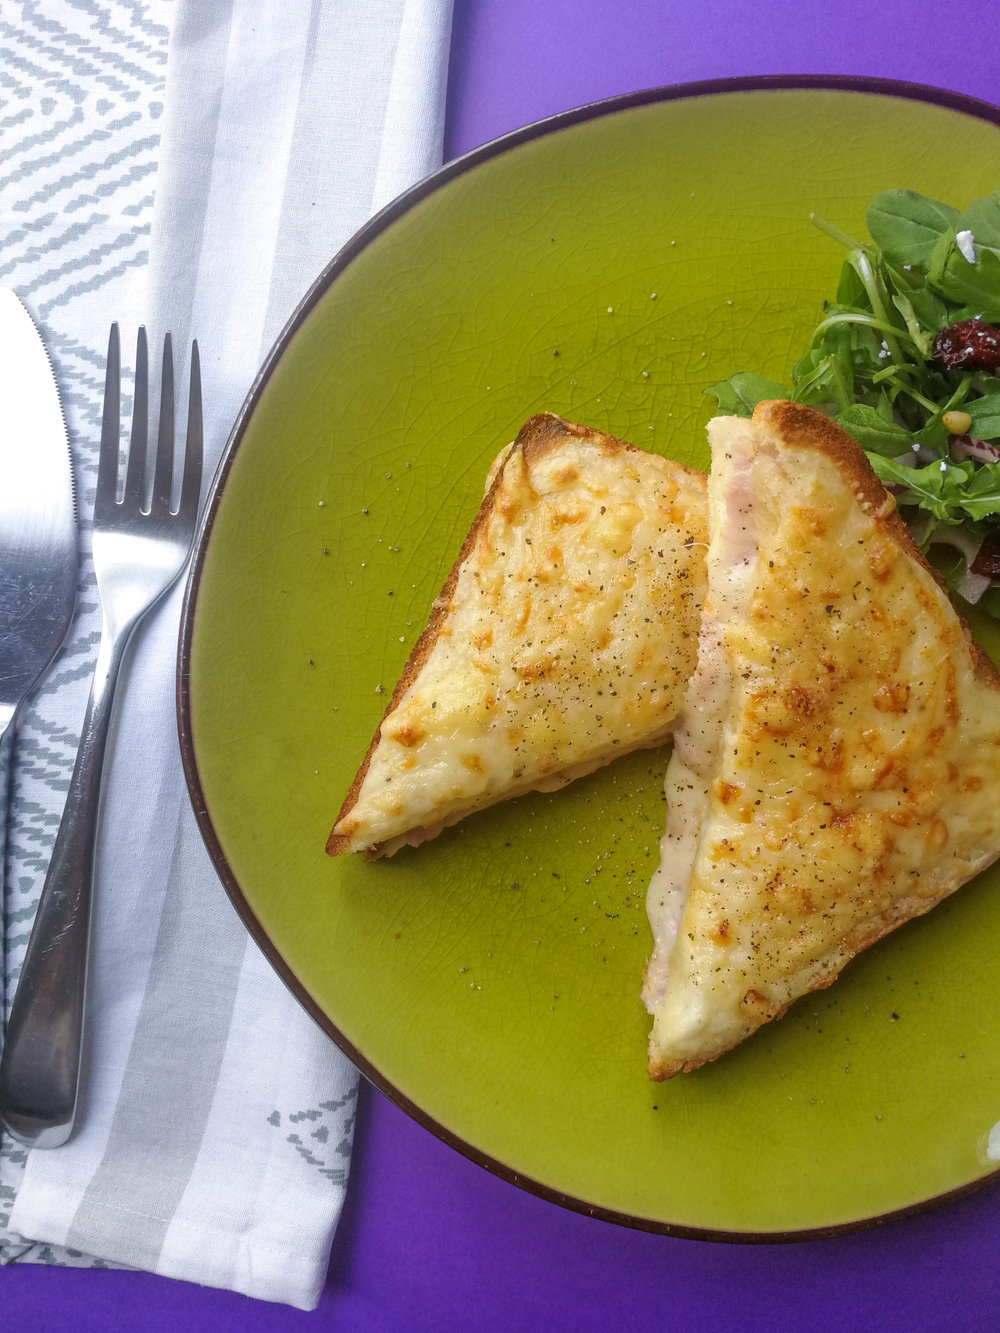 The croque monsieur - i.e. all that the madame is, sans the yolk.